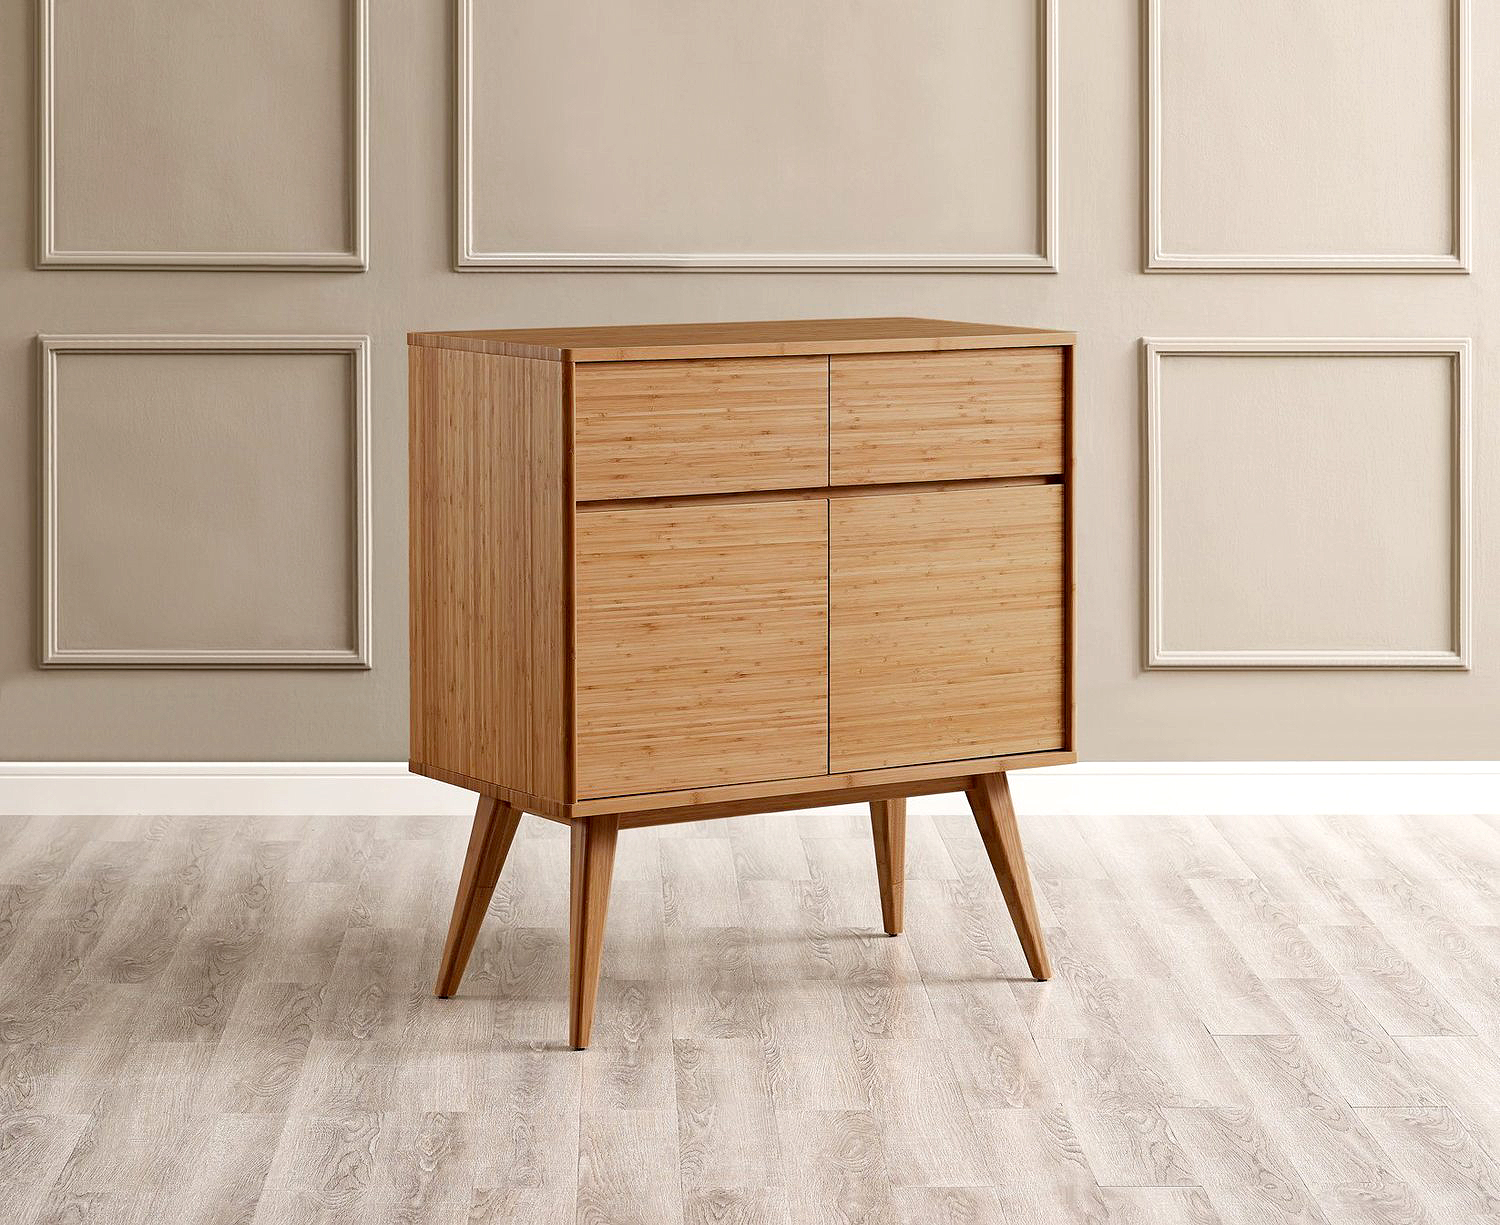 Greenington mid-century modern bamboo side table